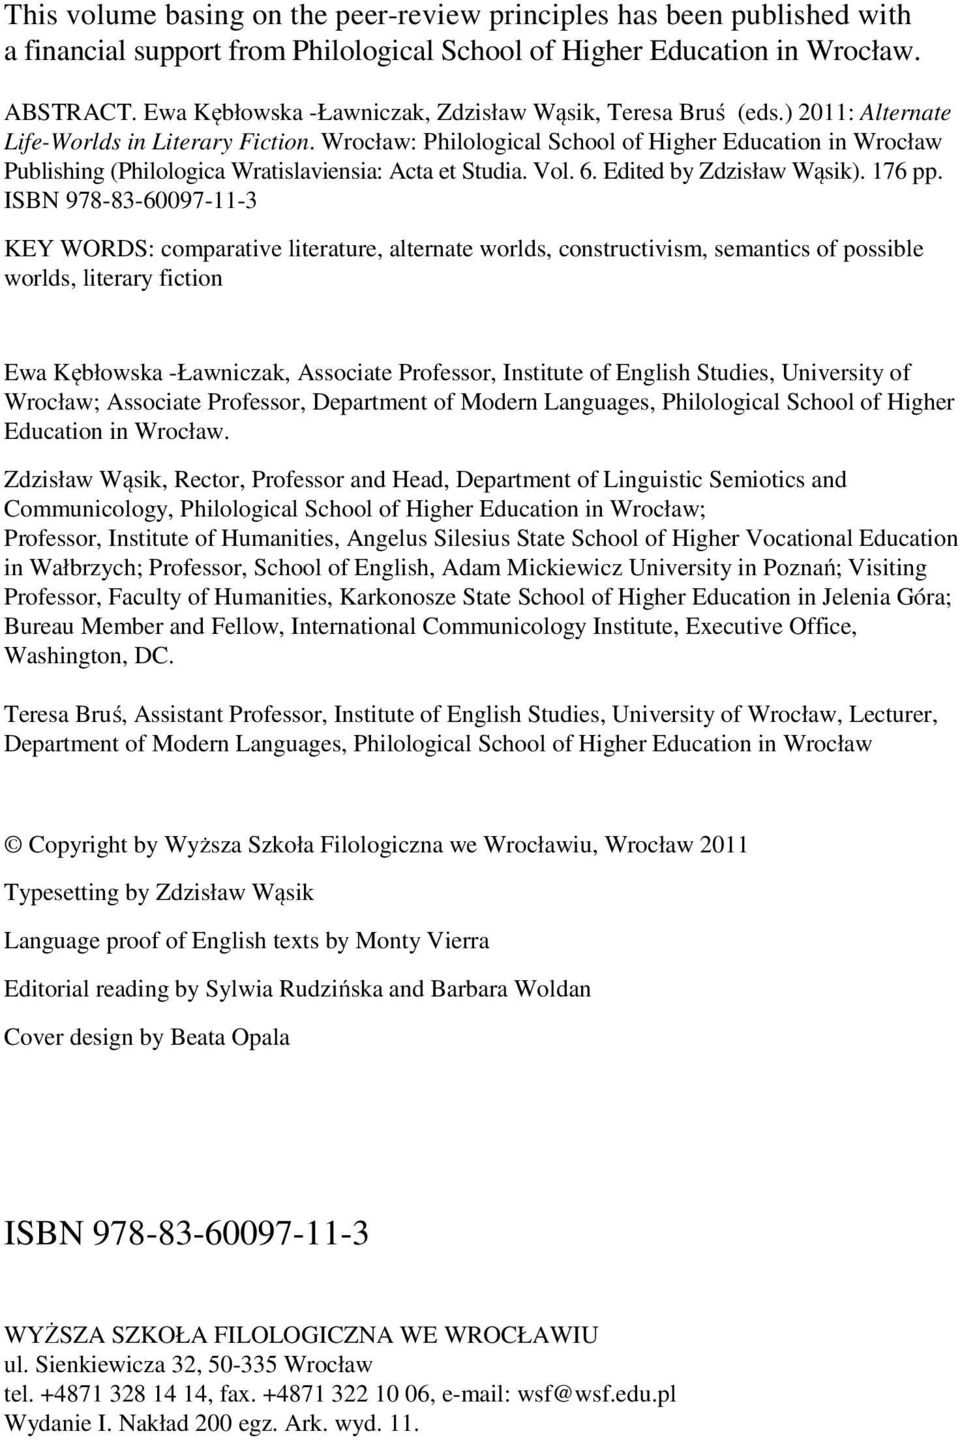 Wrocław: Philological School of Higher Education in Wrocław Publishing (Philologica Wratislaviensia: Acta et Studia. Vol. 6. Edited by Zdzisław Wąsik). 176 pp.